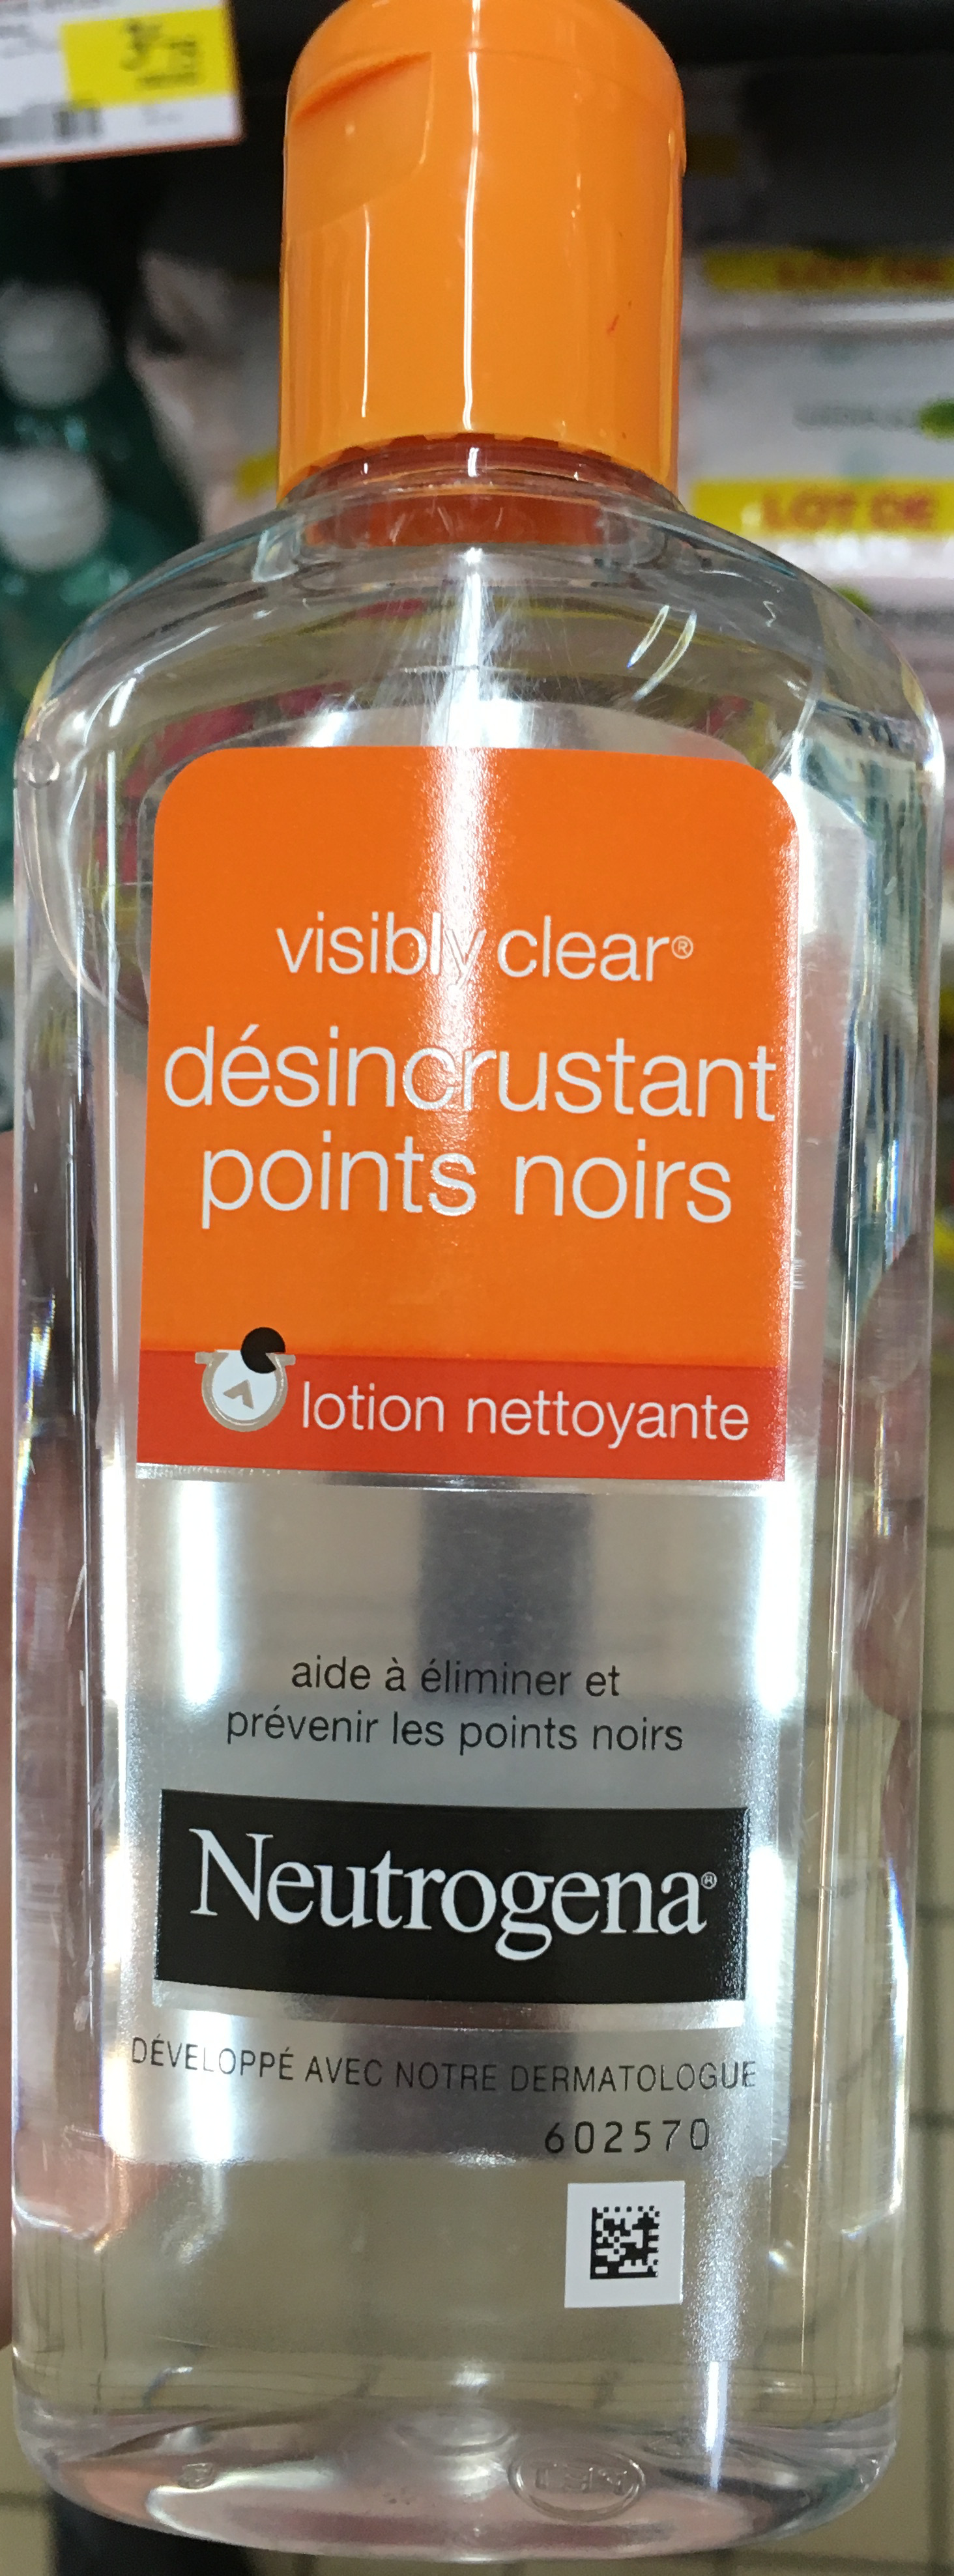 Visibly Clear Désincrustant points noirs lotion nettoyante - Product - fr